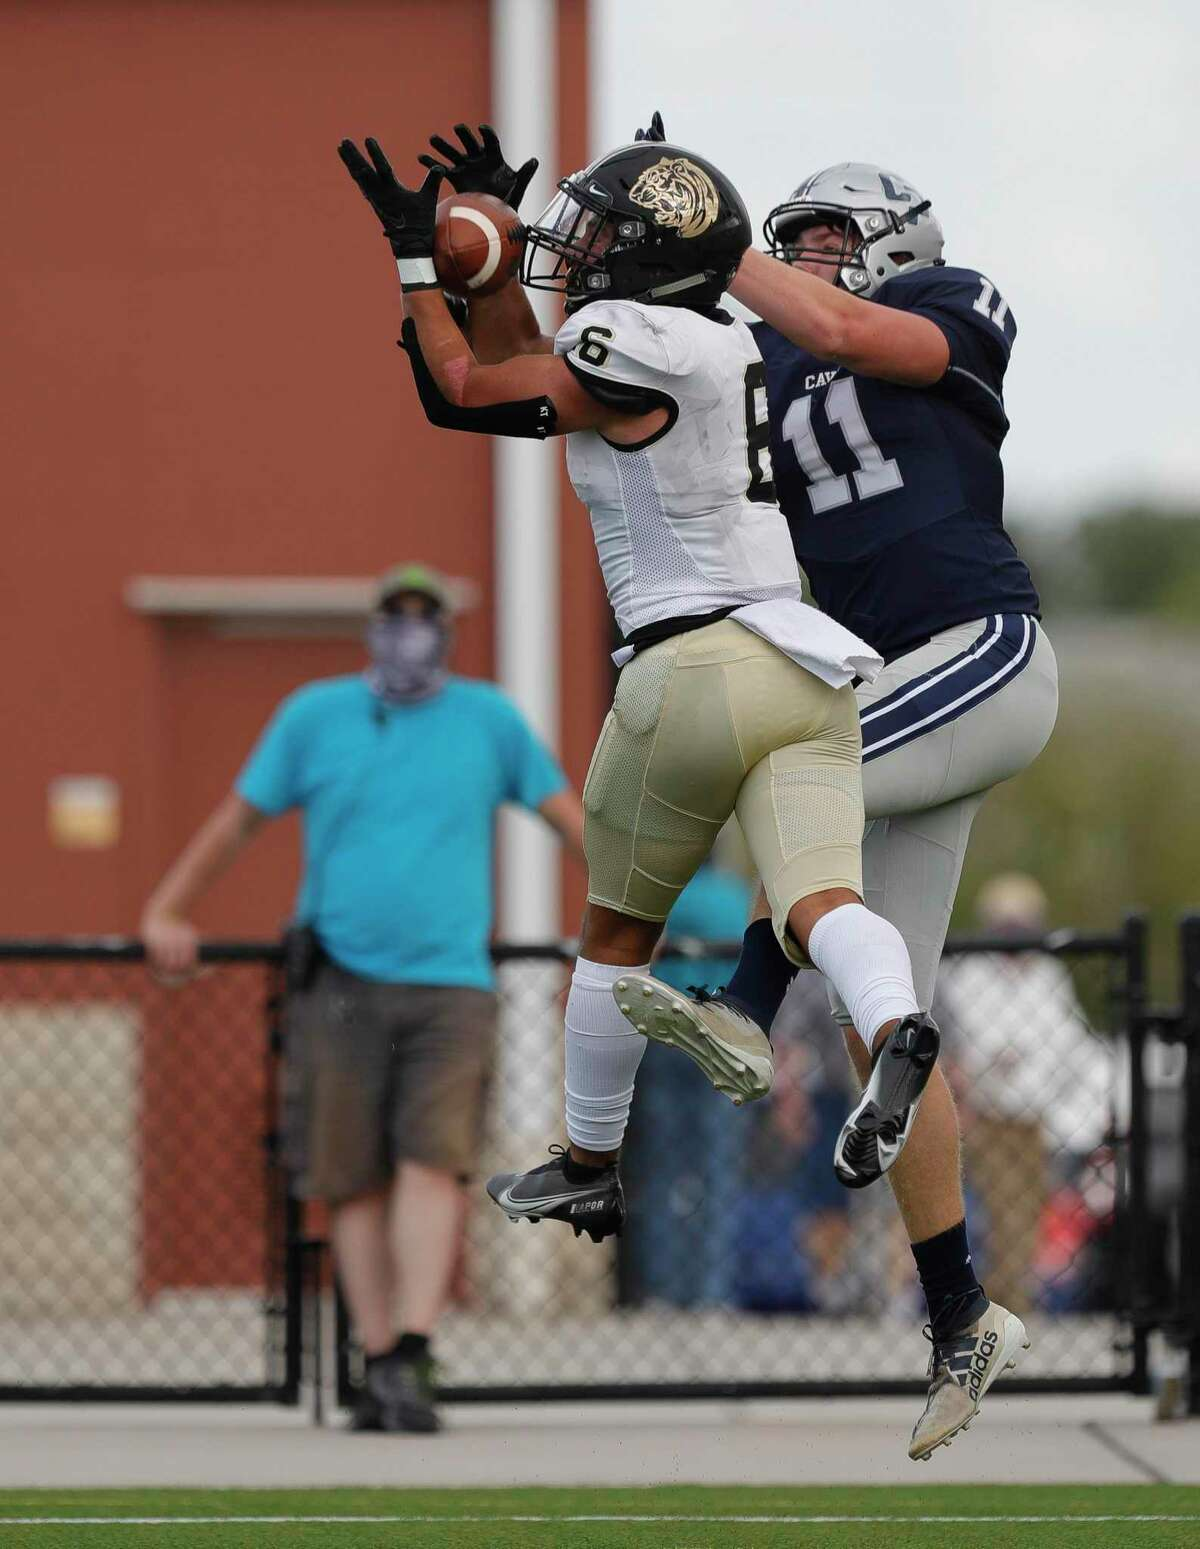 Conroe defensive back Layne O'Dell (6) intercepts a pass intended for College Park tight end Cody Mladenka (11) during the second quarter of a District 13-6A high school football game at Woodforest Bank Stadium, Saturday, Nov. 14, 2020, in Shenandoah.